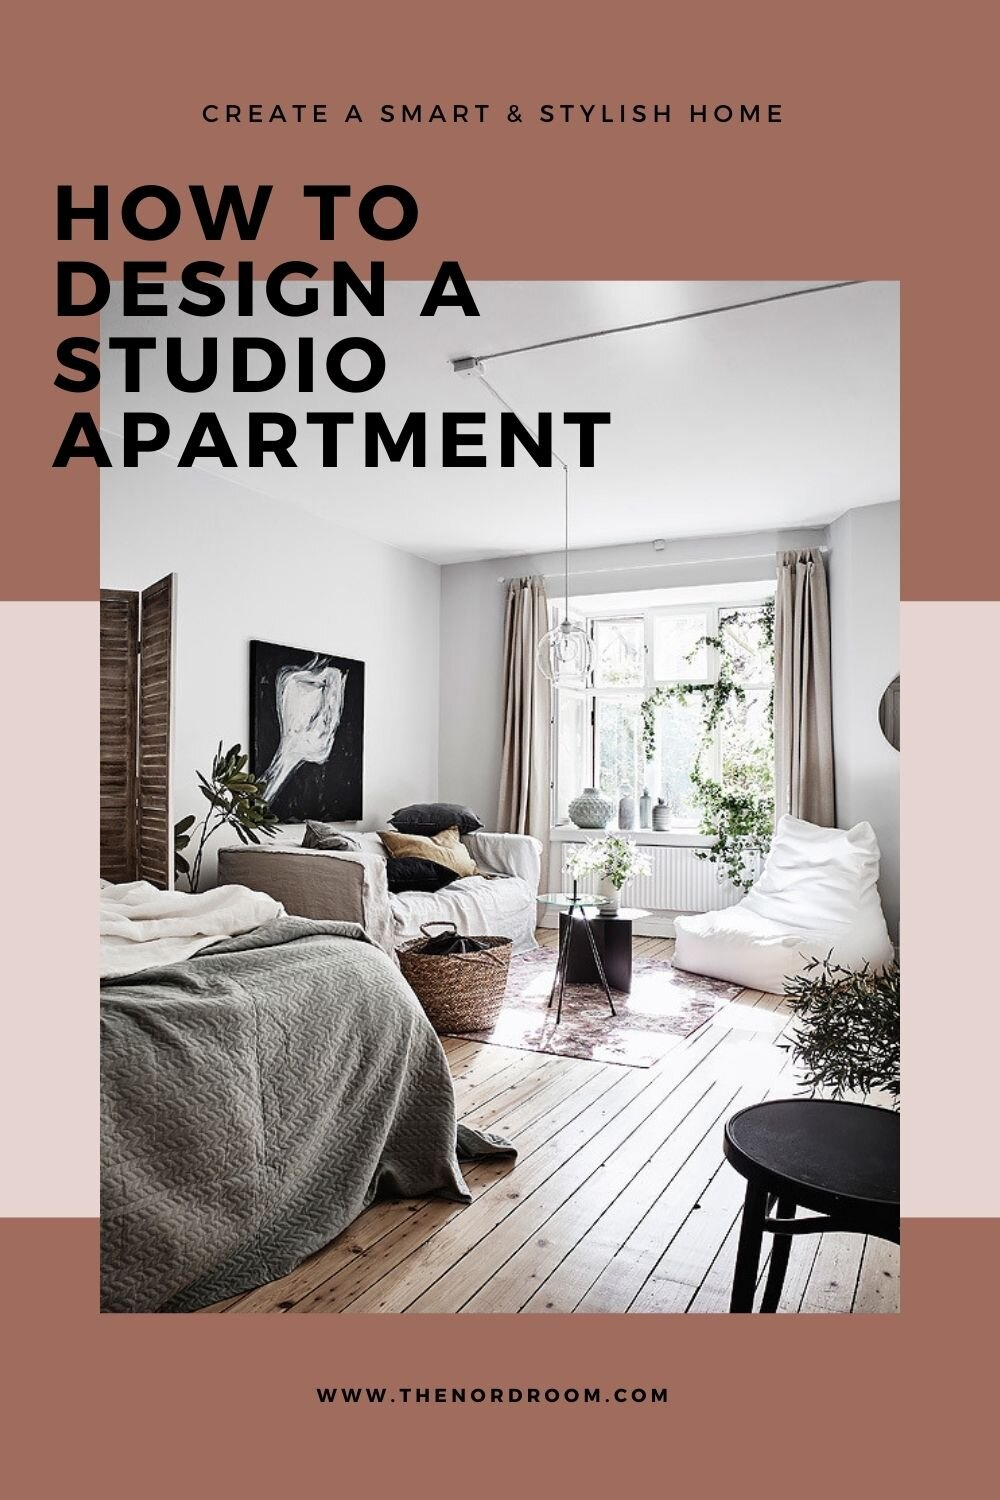 How To Design A Studio Apartment And Create A Smart And Stylish Home